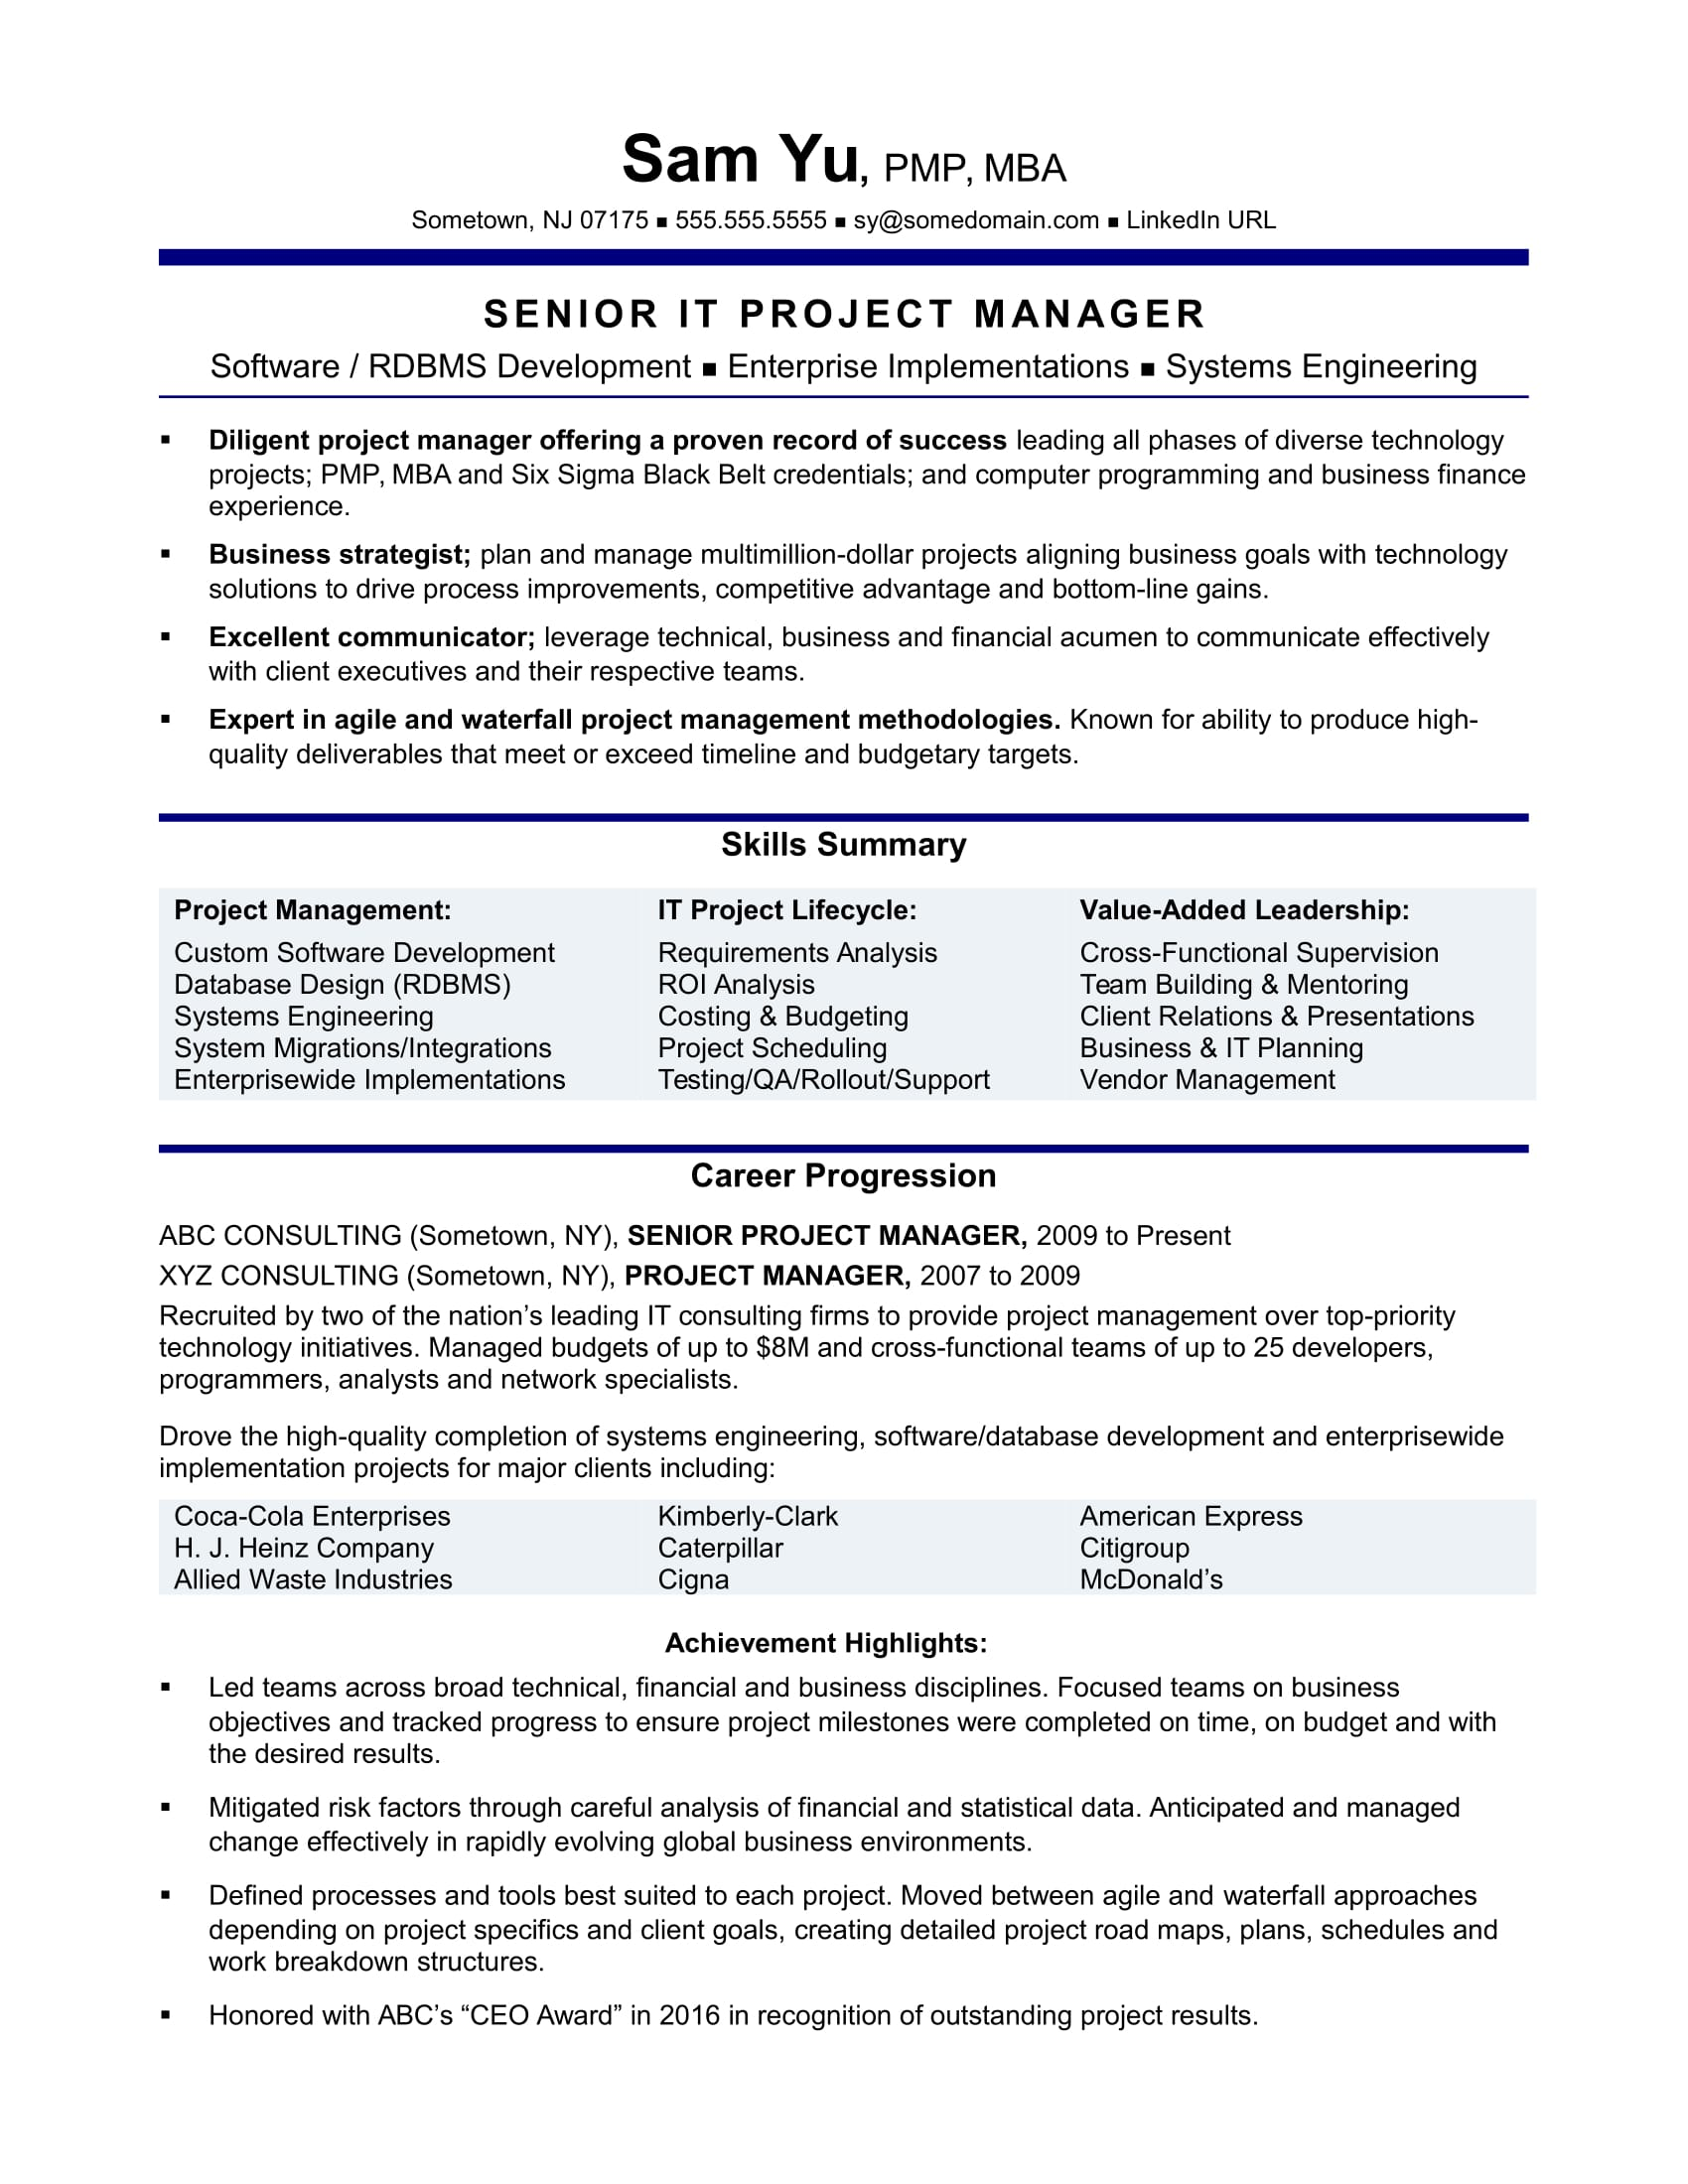 resume Business Resume Design experienced it project manager resume sample monster com sample